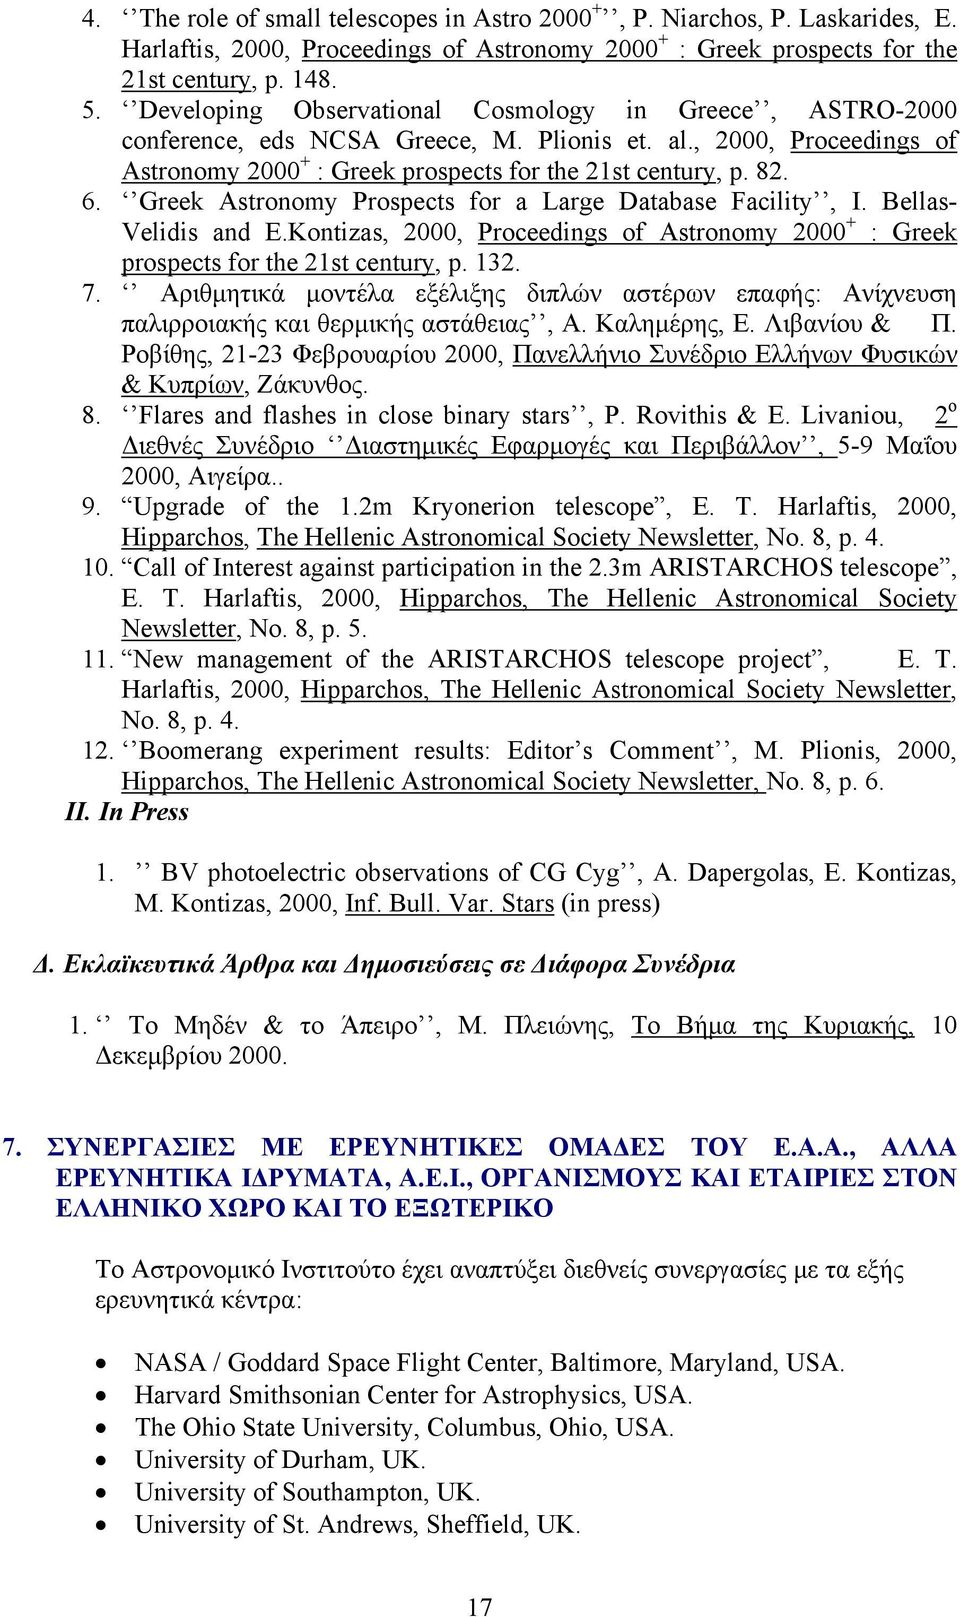 Greek Astronomy Prospects for a Large Database Facility, I. Bellas- Velidis and E.Kontizas, 2000, Proceedings of Astronomy 2000 + : Greek prospects for the 21st century, p. 132. 7.